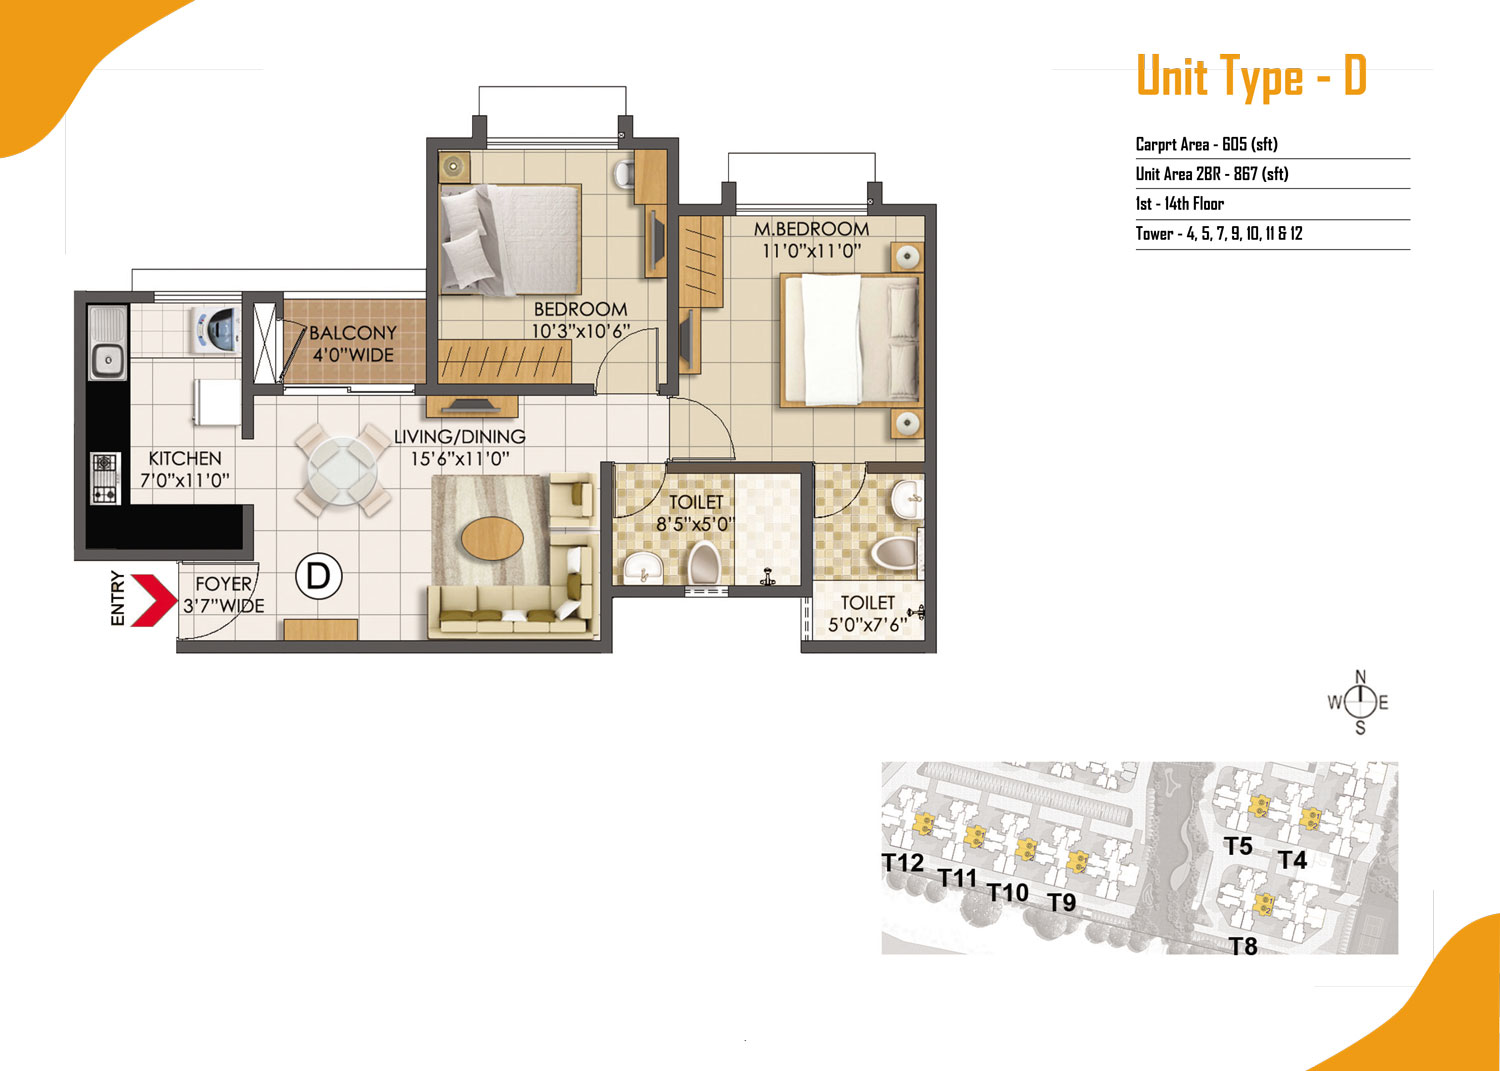 Type D - 2 Bed - 867 Sq Ft